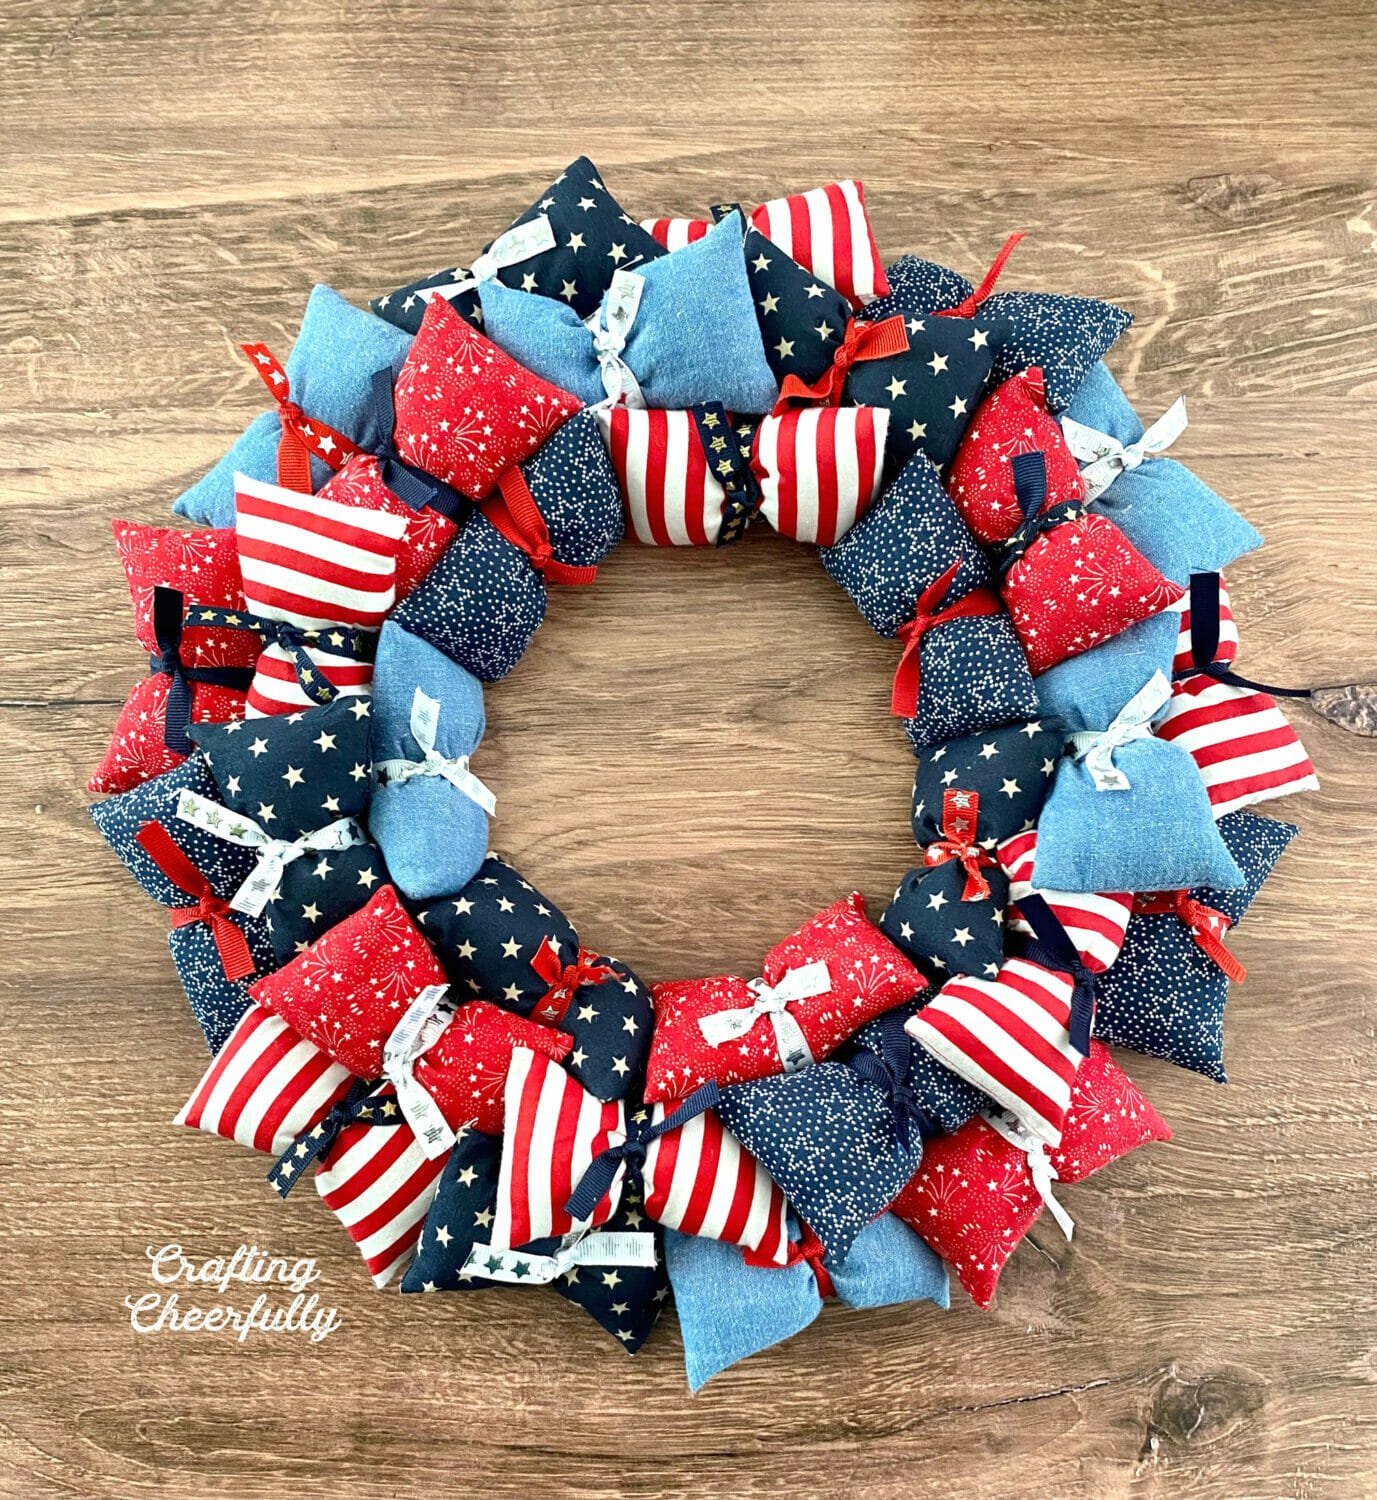 Pillow wreath made from red, white and blue fabric on a wooden background.